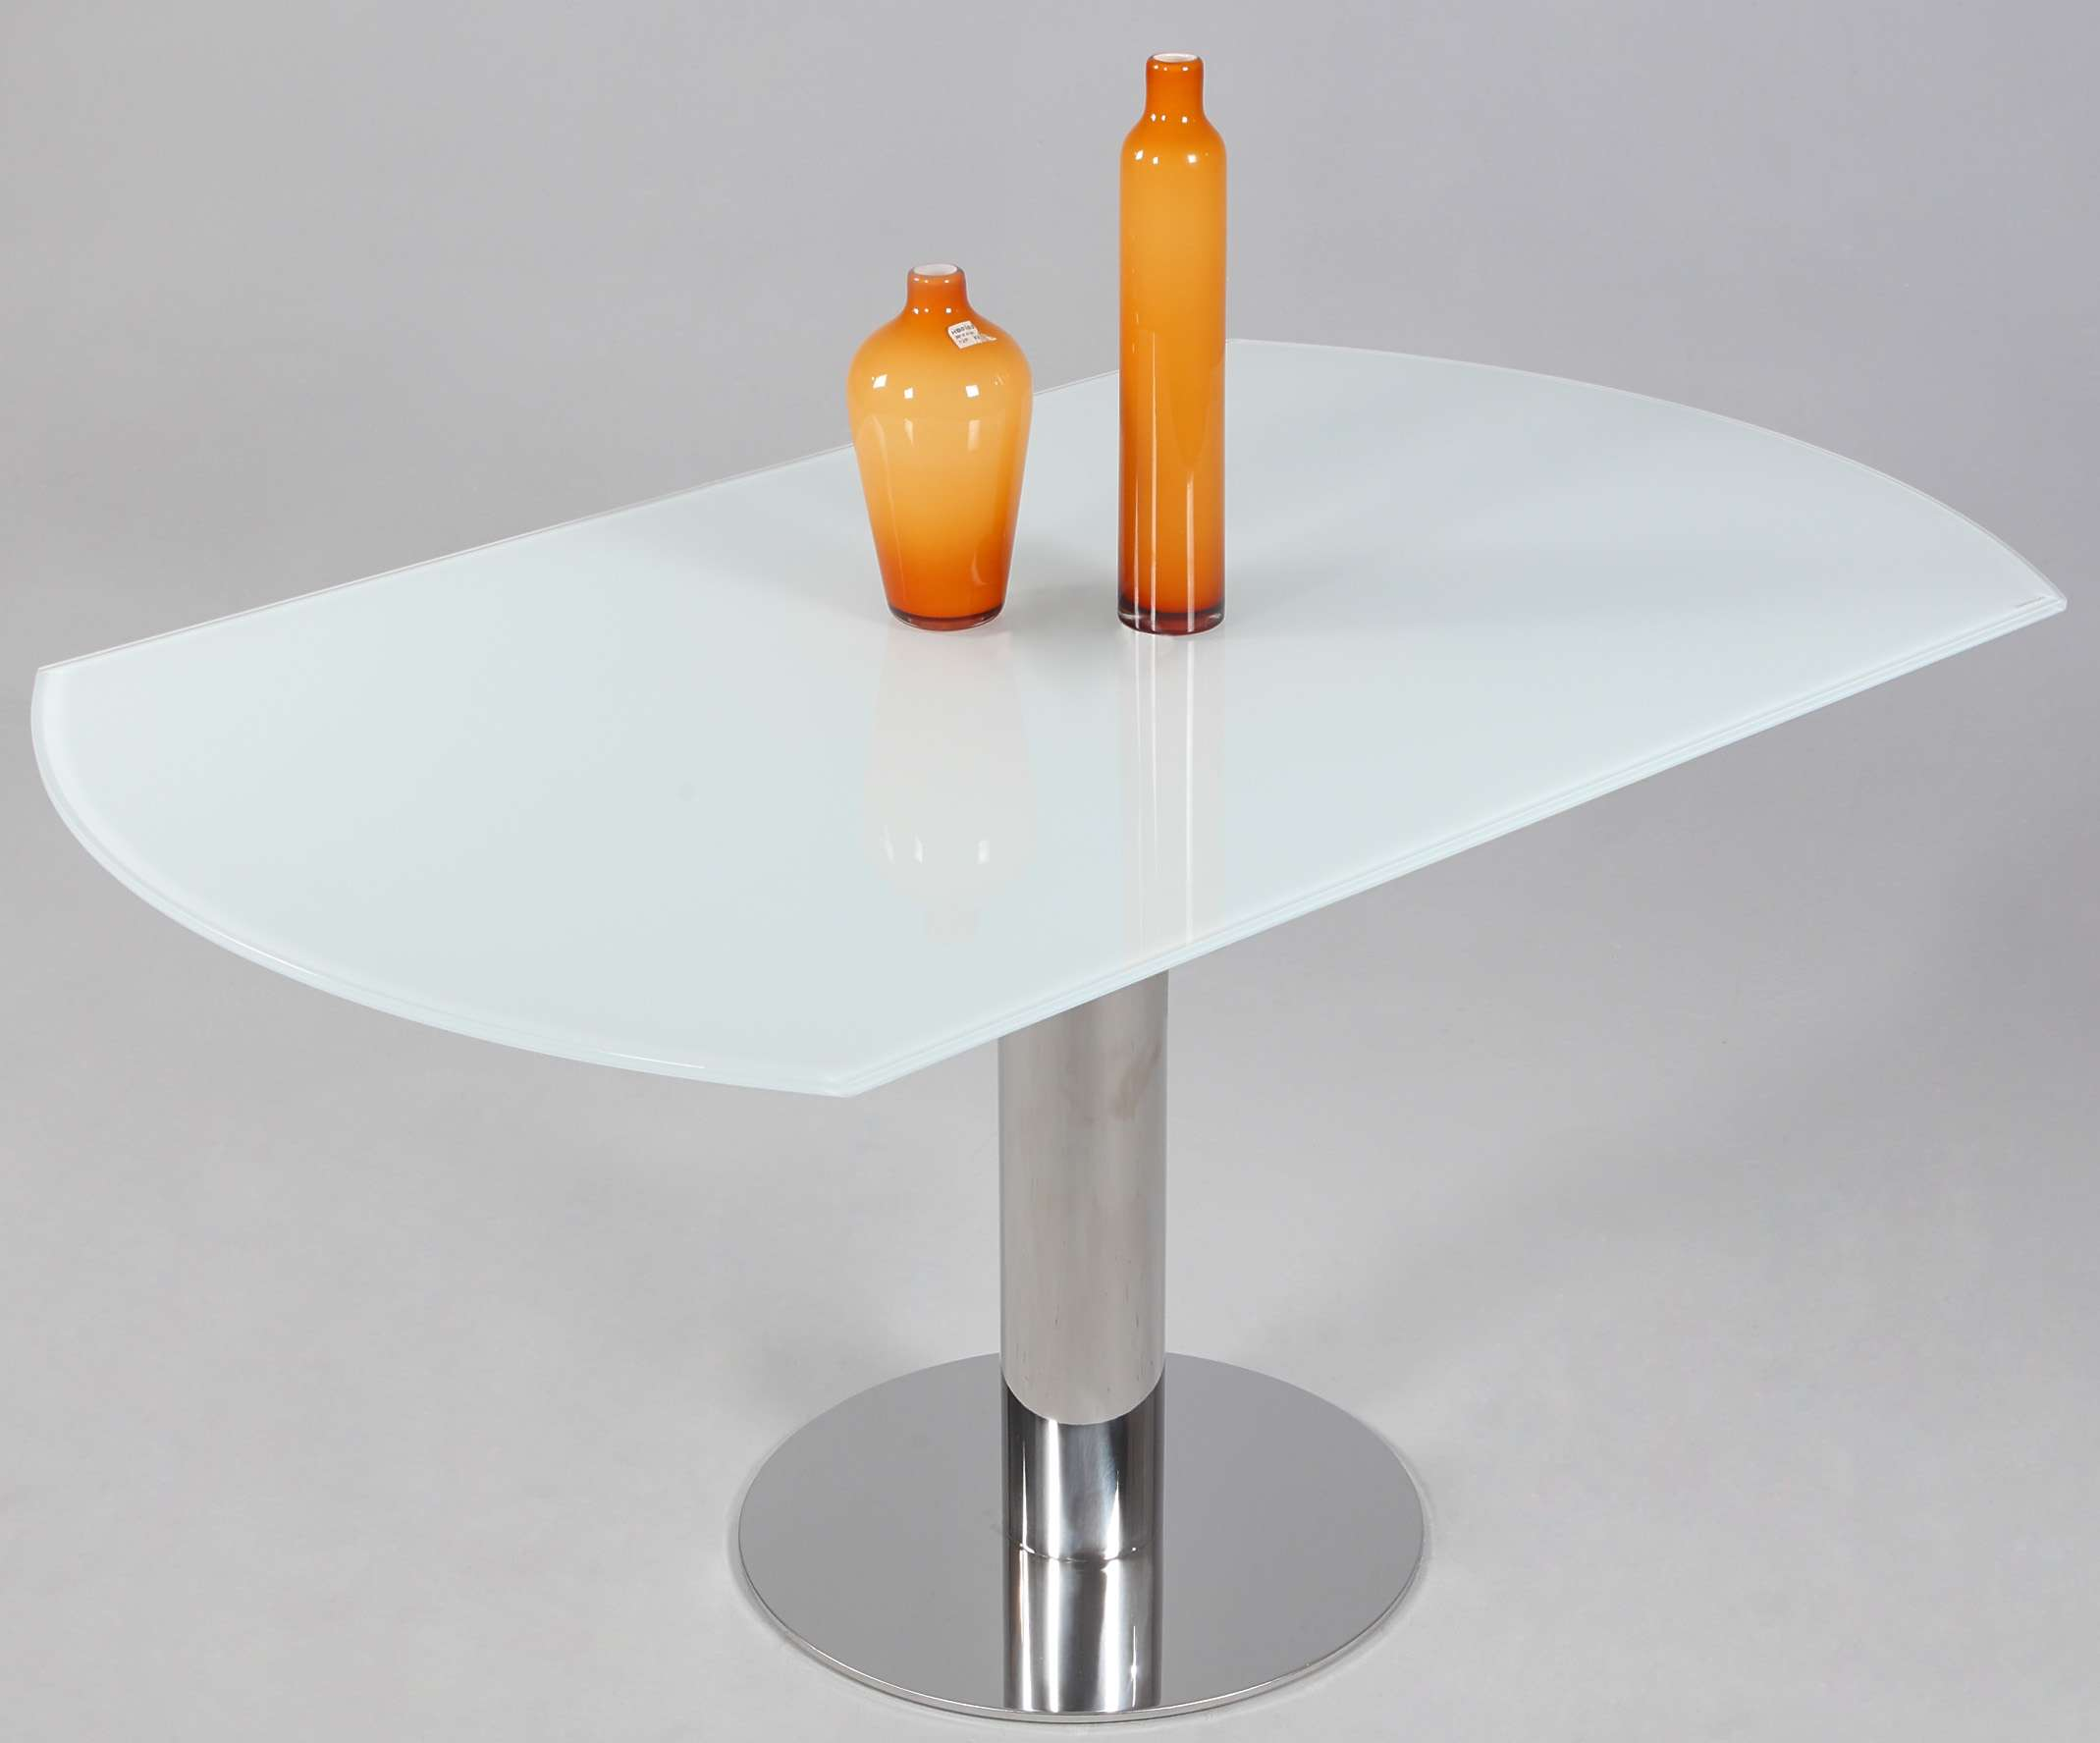 Tami Starphire White Glass Round Extension Dining Table with Polished Stainless Steel Base